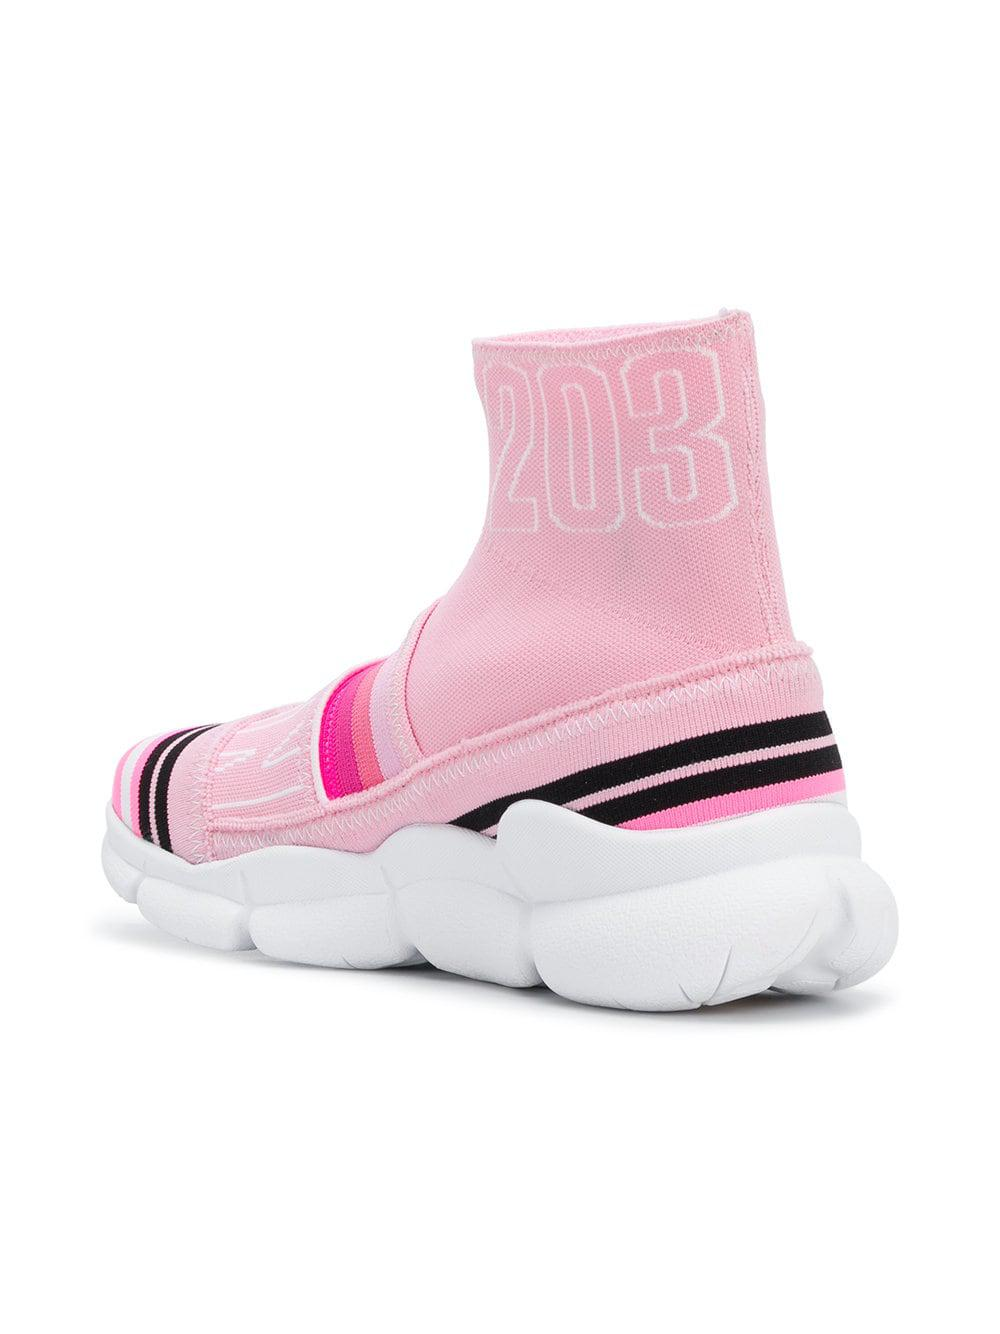 MSGM Cotton Branded Sock Sneakers in Pink